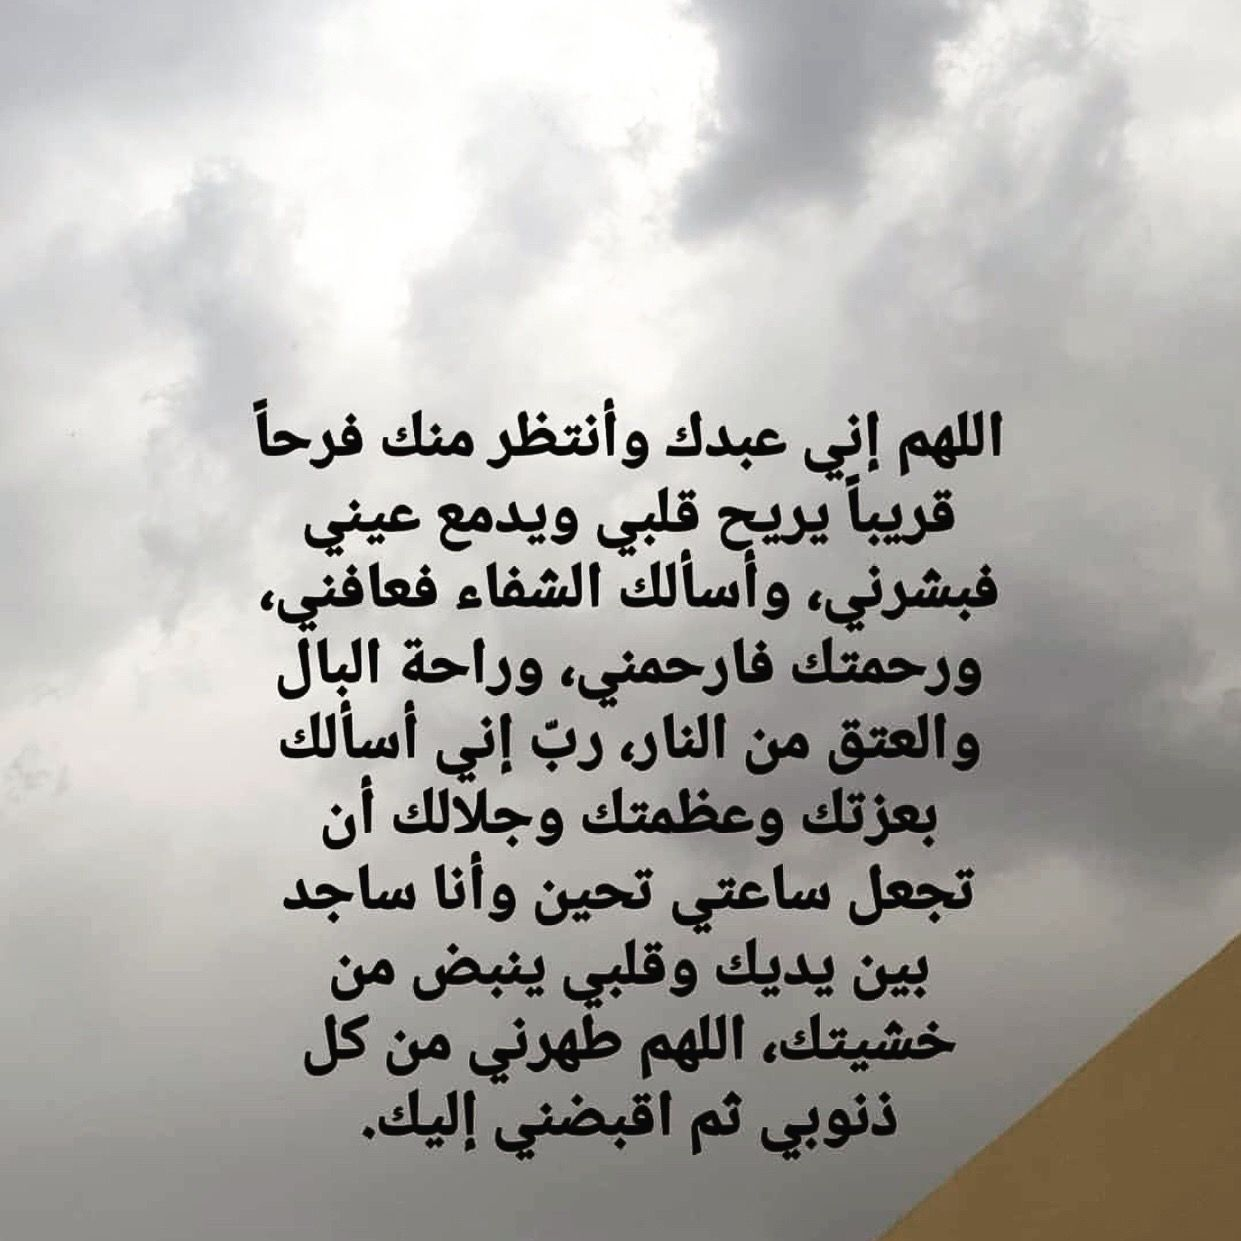 Pin By Bilssan Rim On ياااارب Islamic Quotes Some Words Arabic Quotes